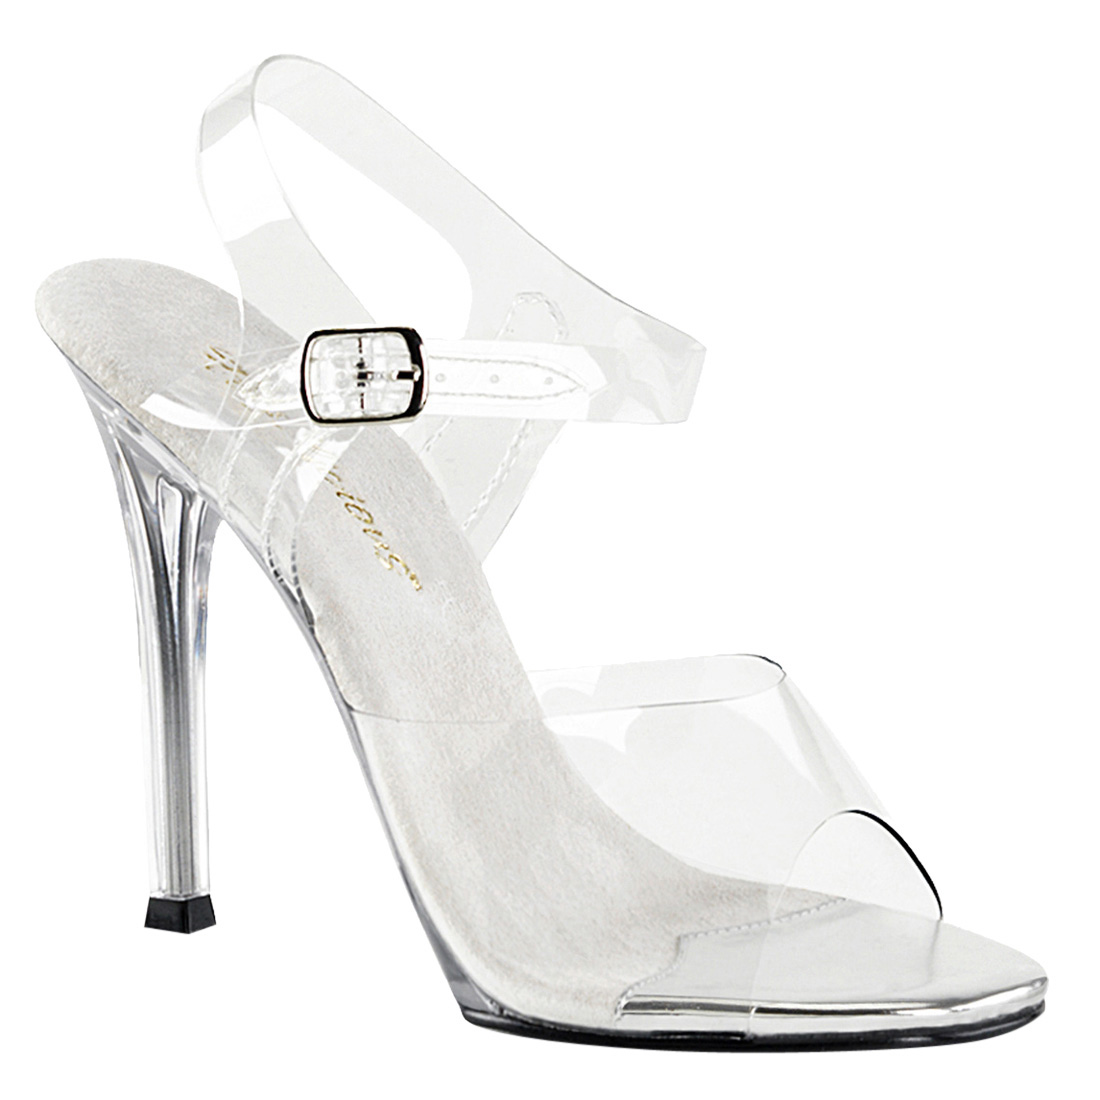 Fabulicious GALA-08 Women's Clear High Stiletto Heel Ankl...